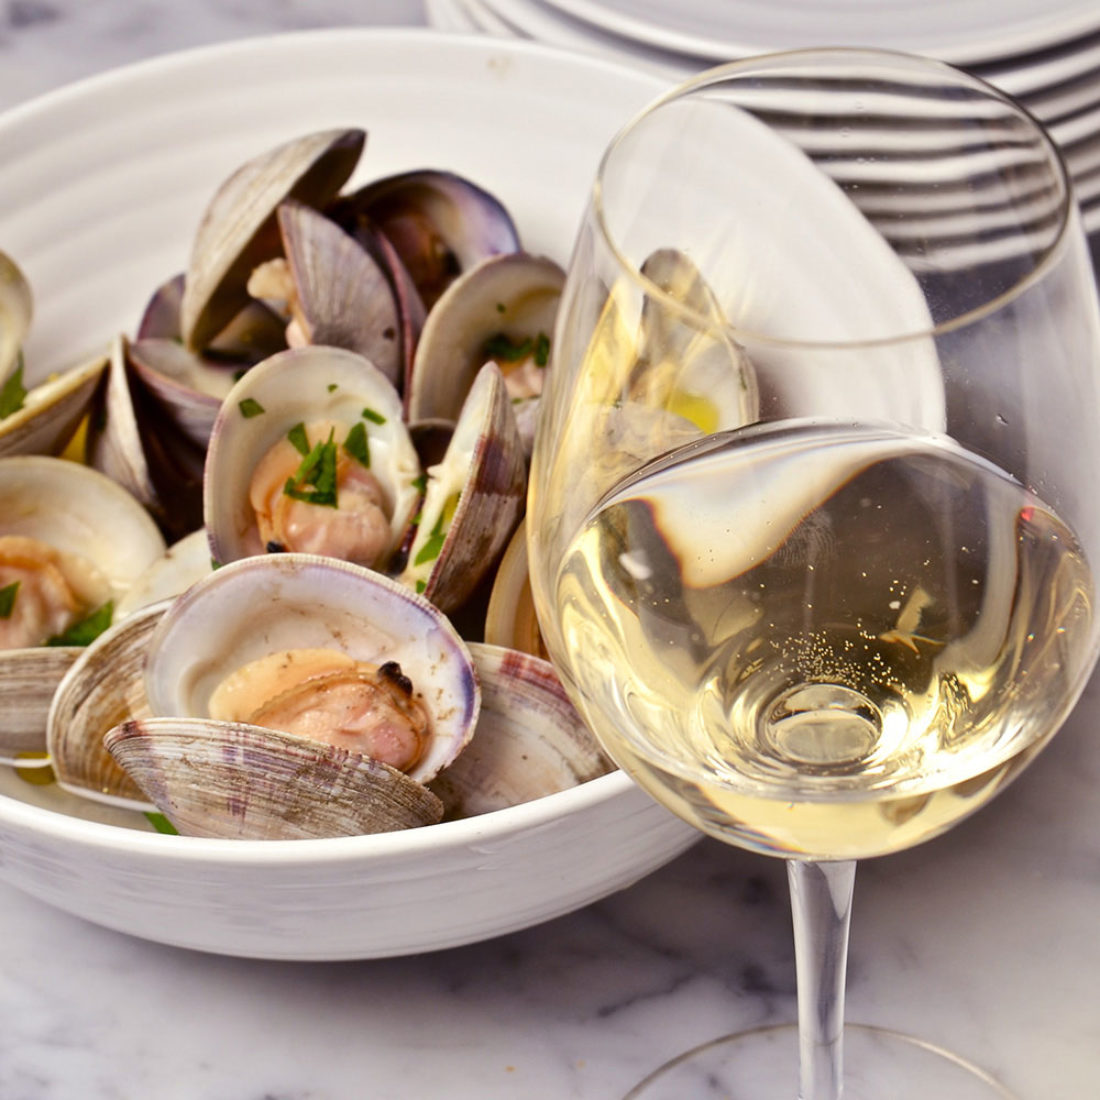 Steamed Clams and Chilled Grillo from Sicilia DOC